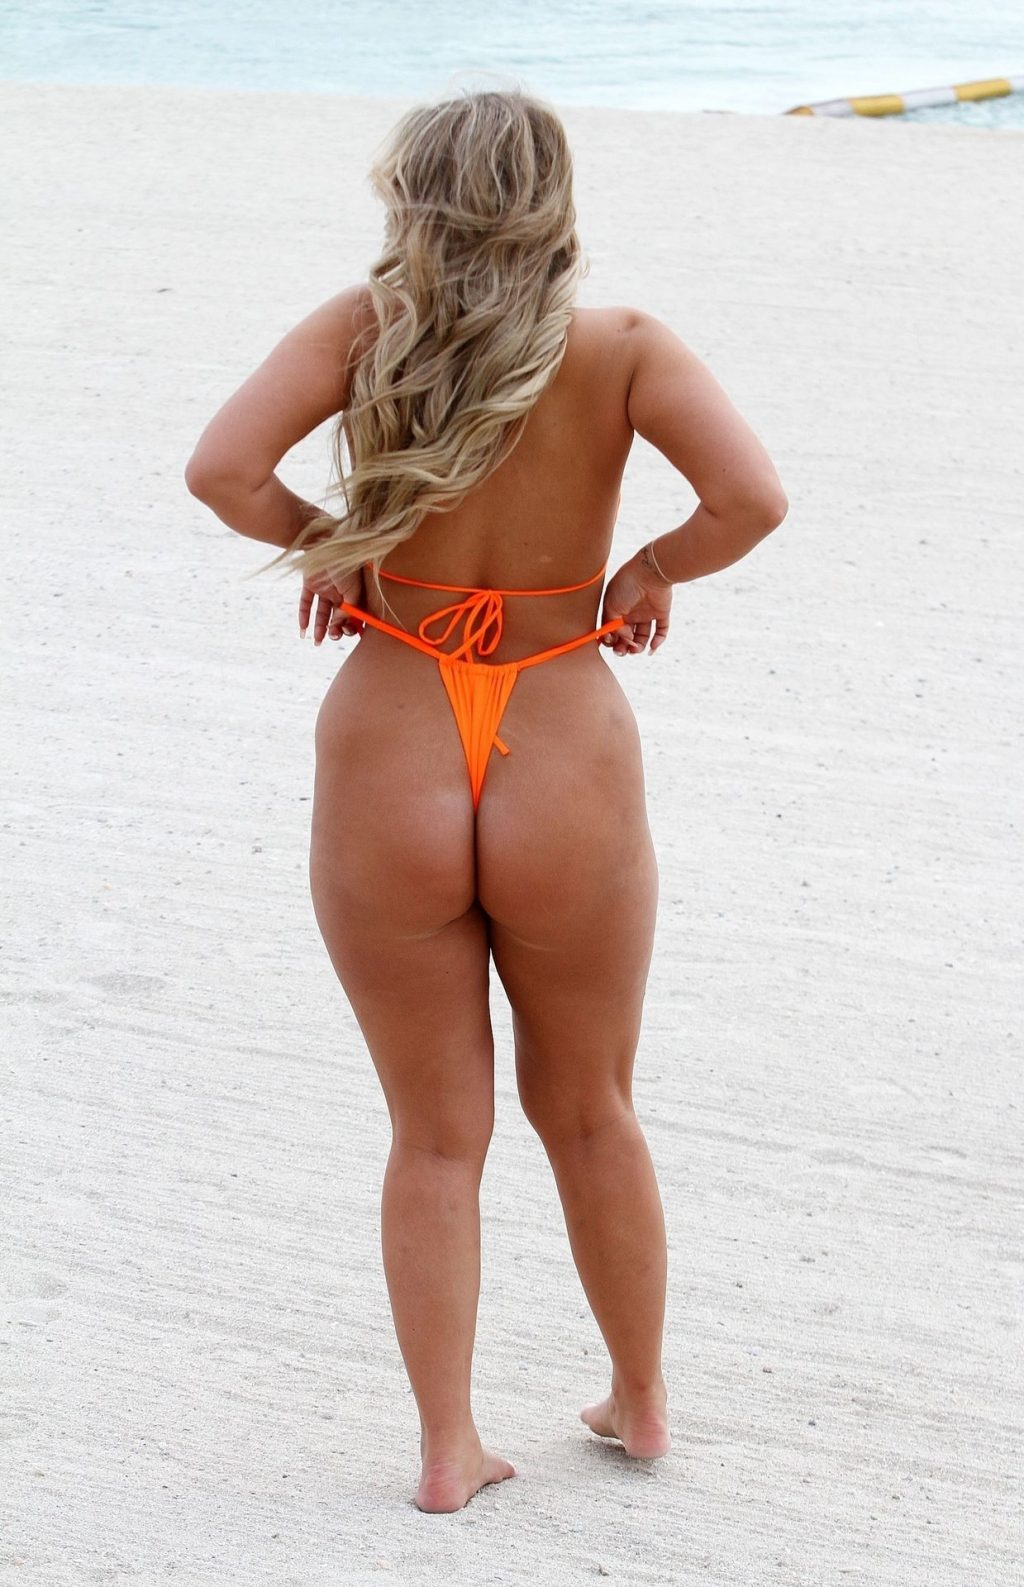 Bethan Kershaw Pictured Wearing a Bright Orange Bikini (12 Photos)